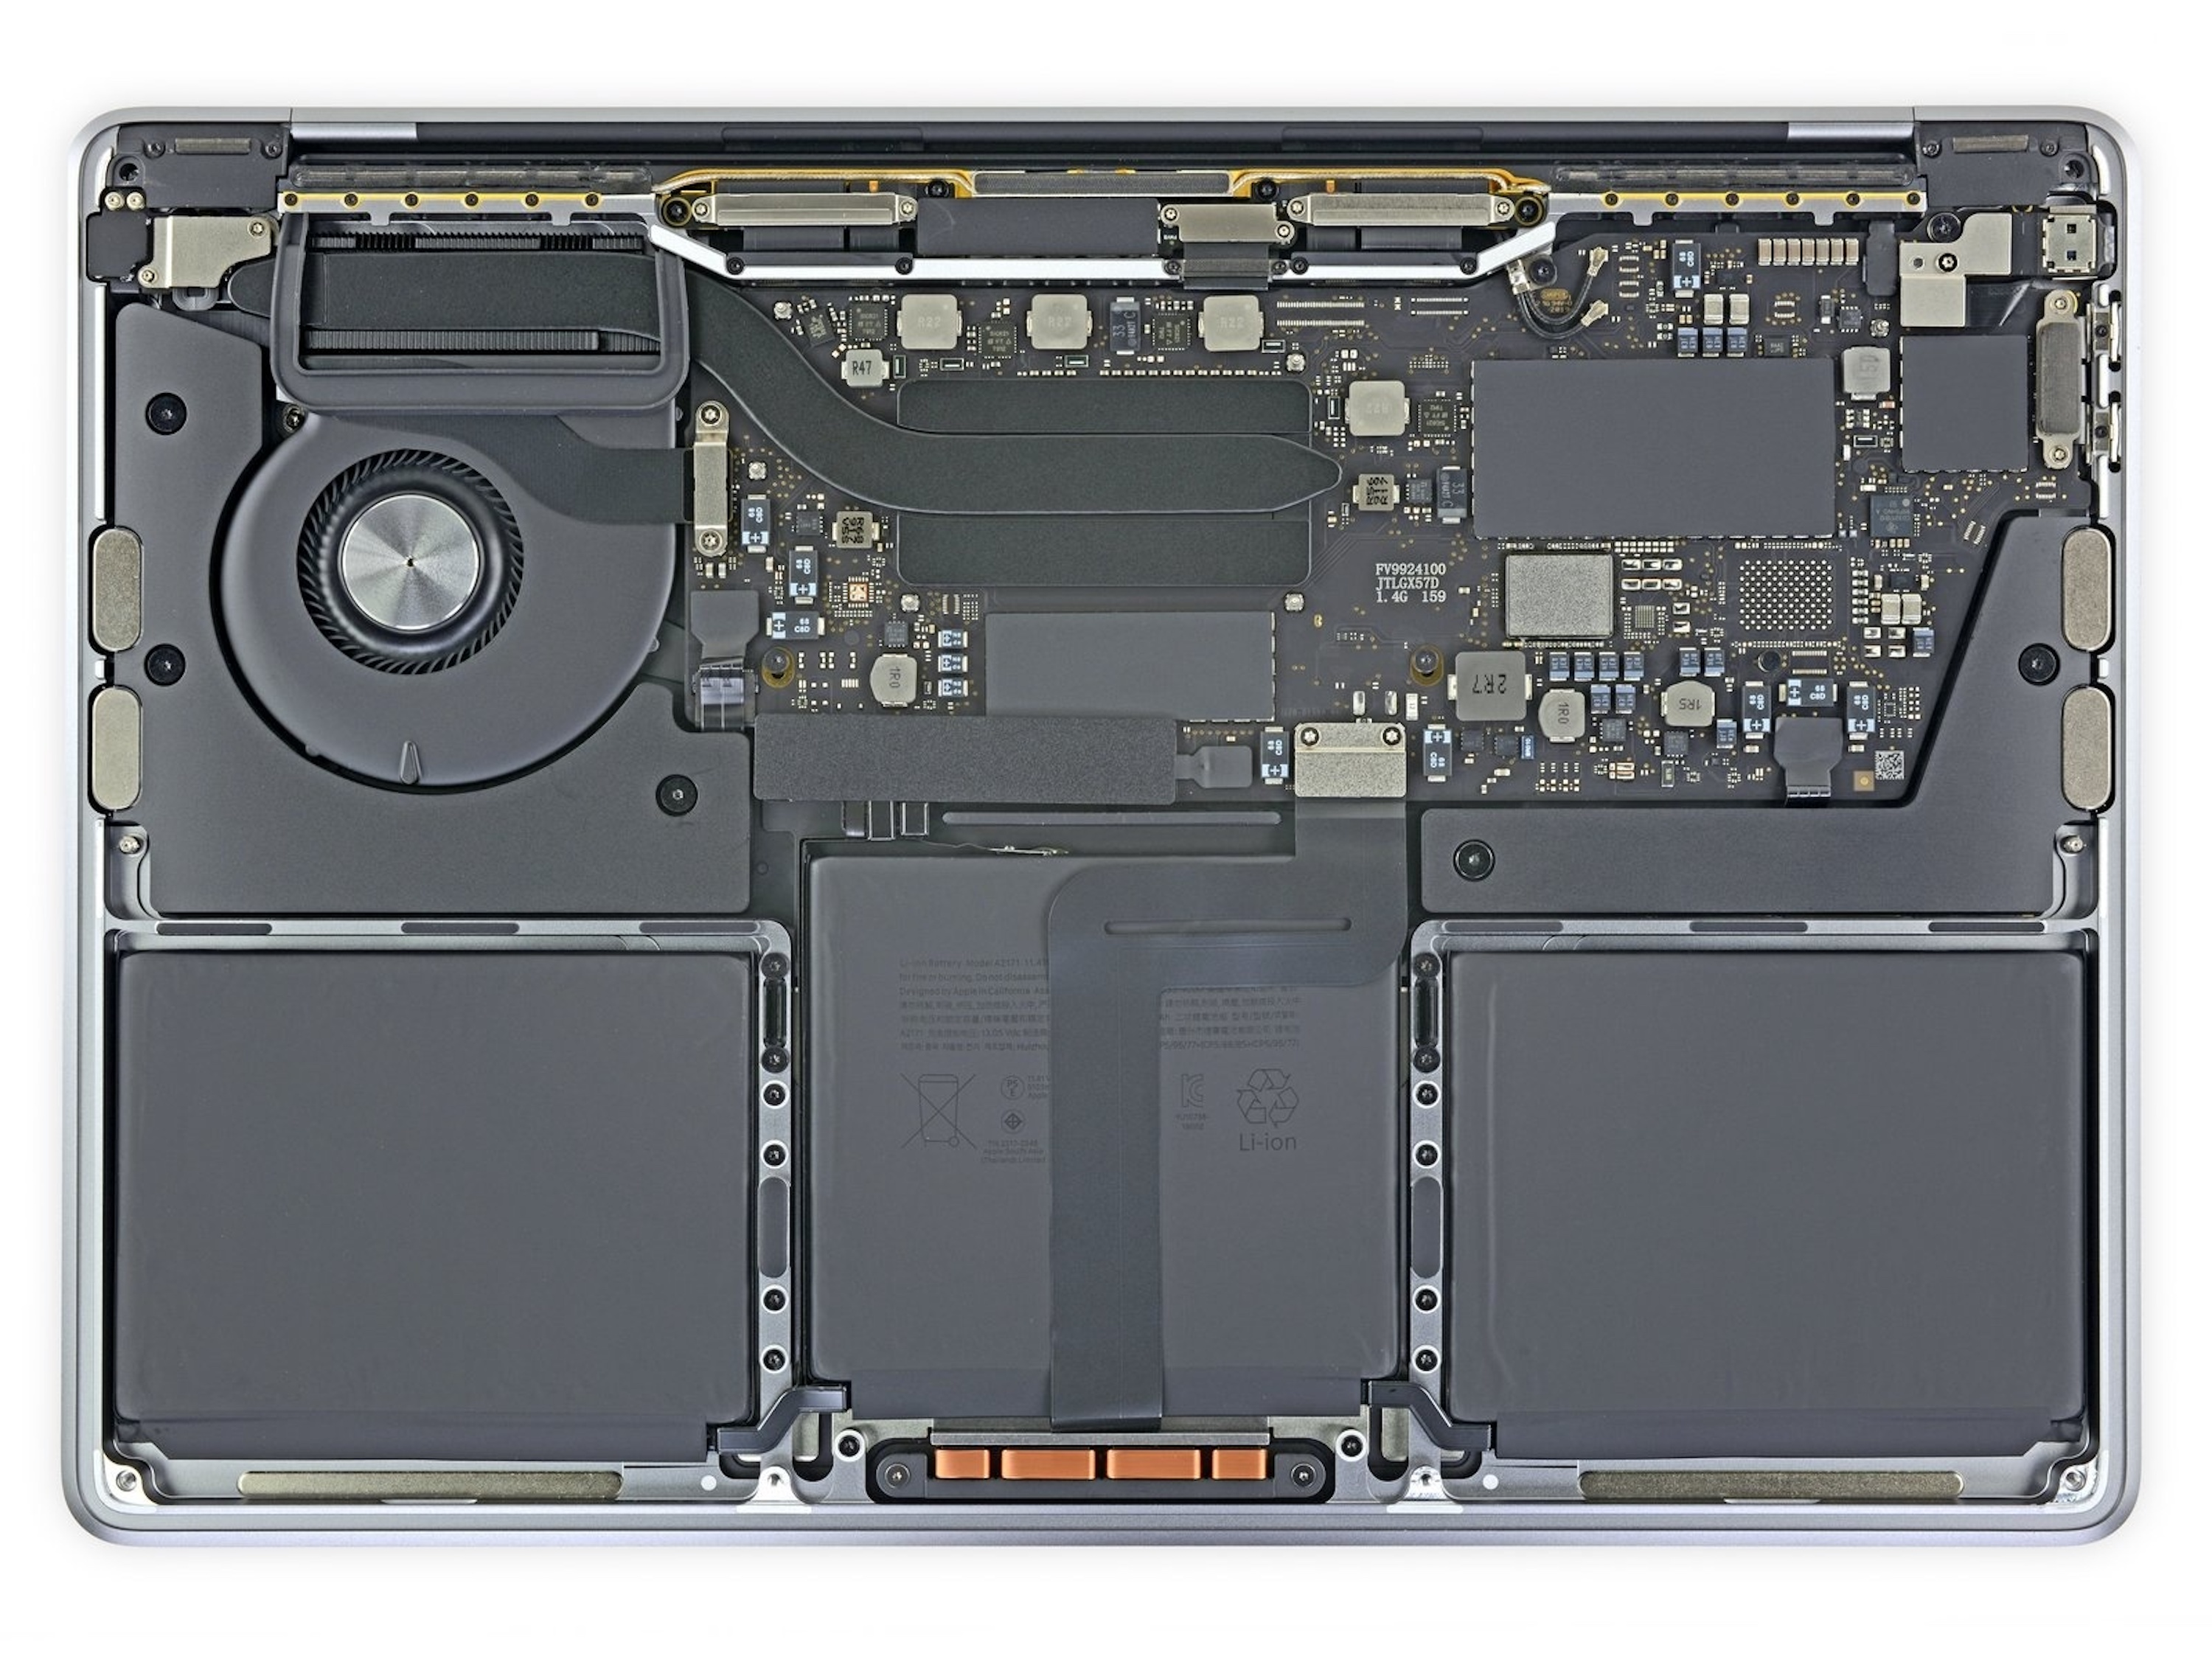 iFixit teardown shows just how similar the new M1 MacBooks are